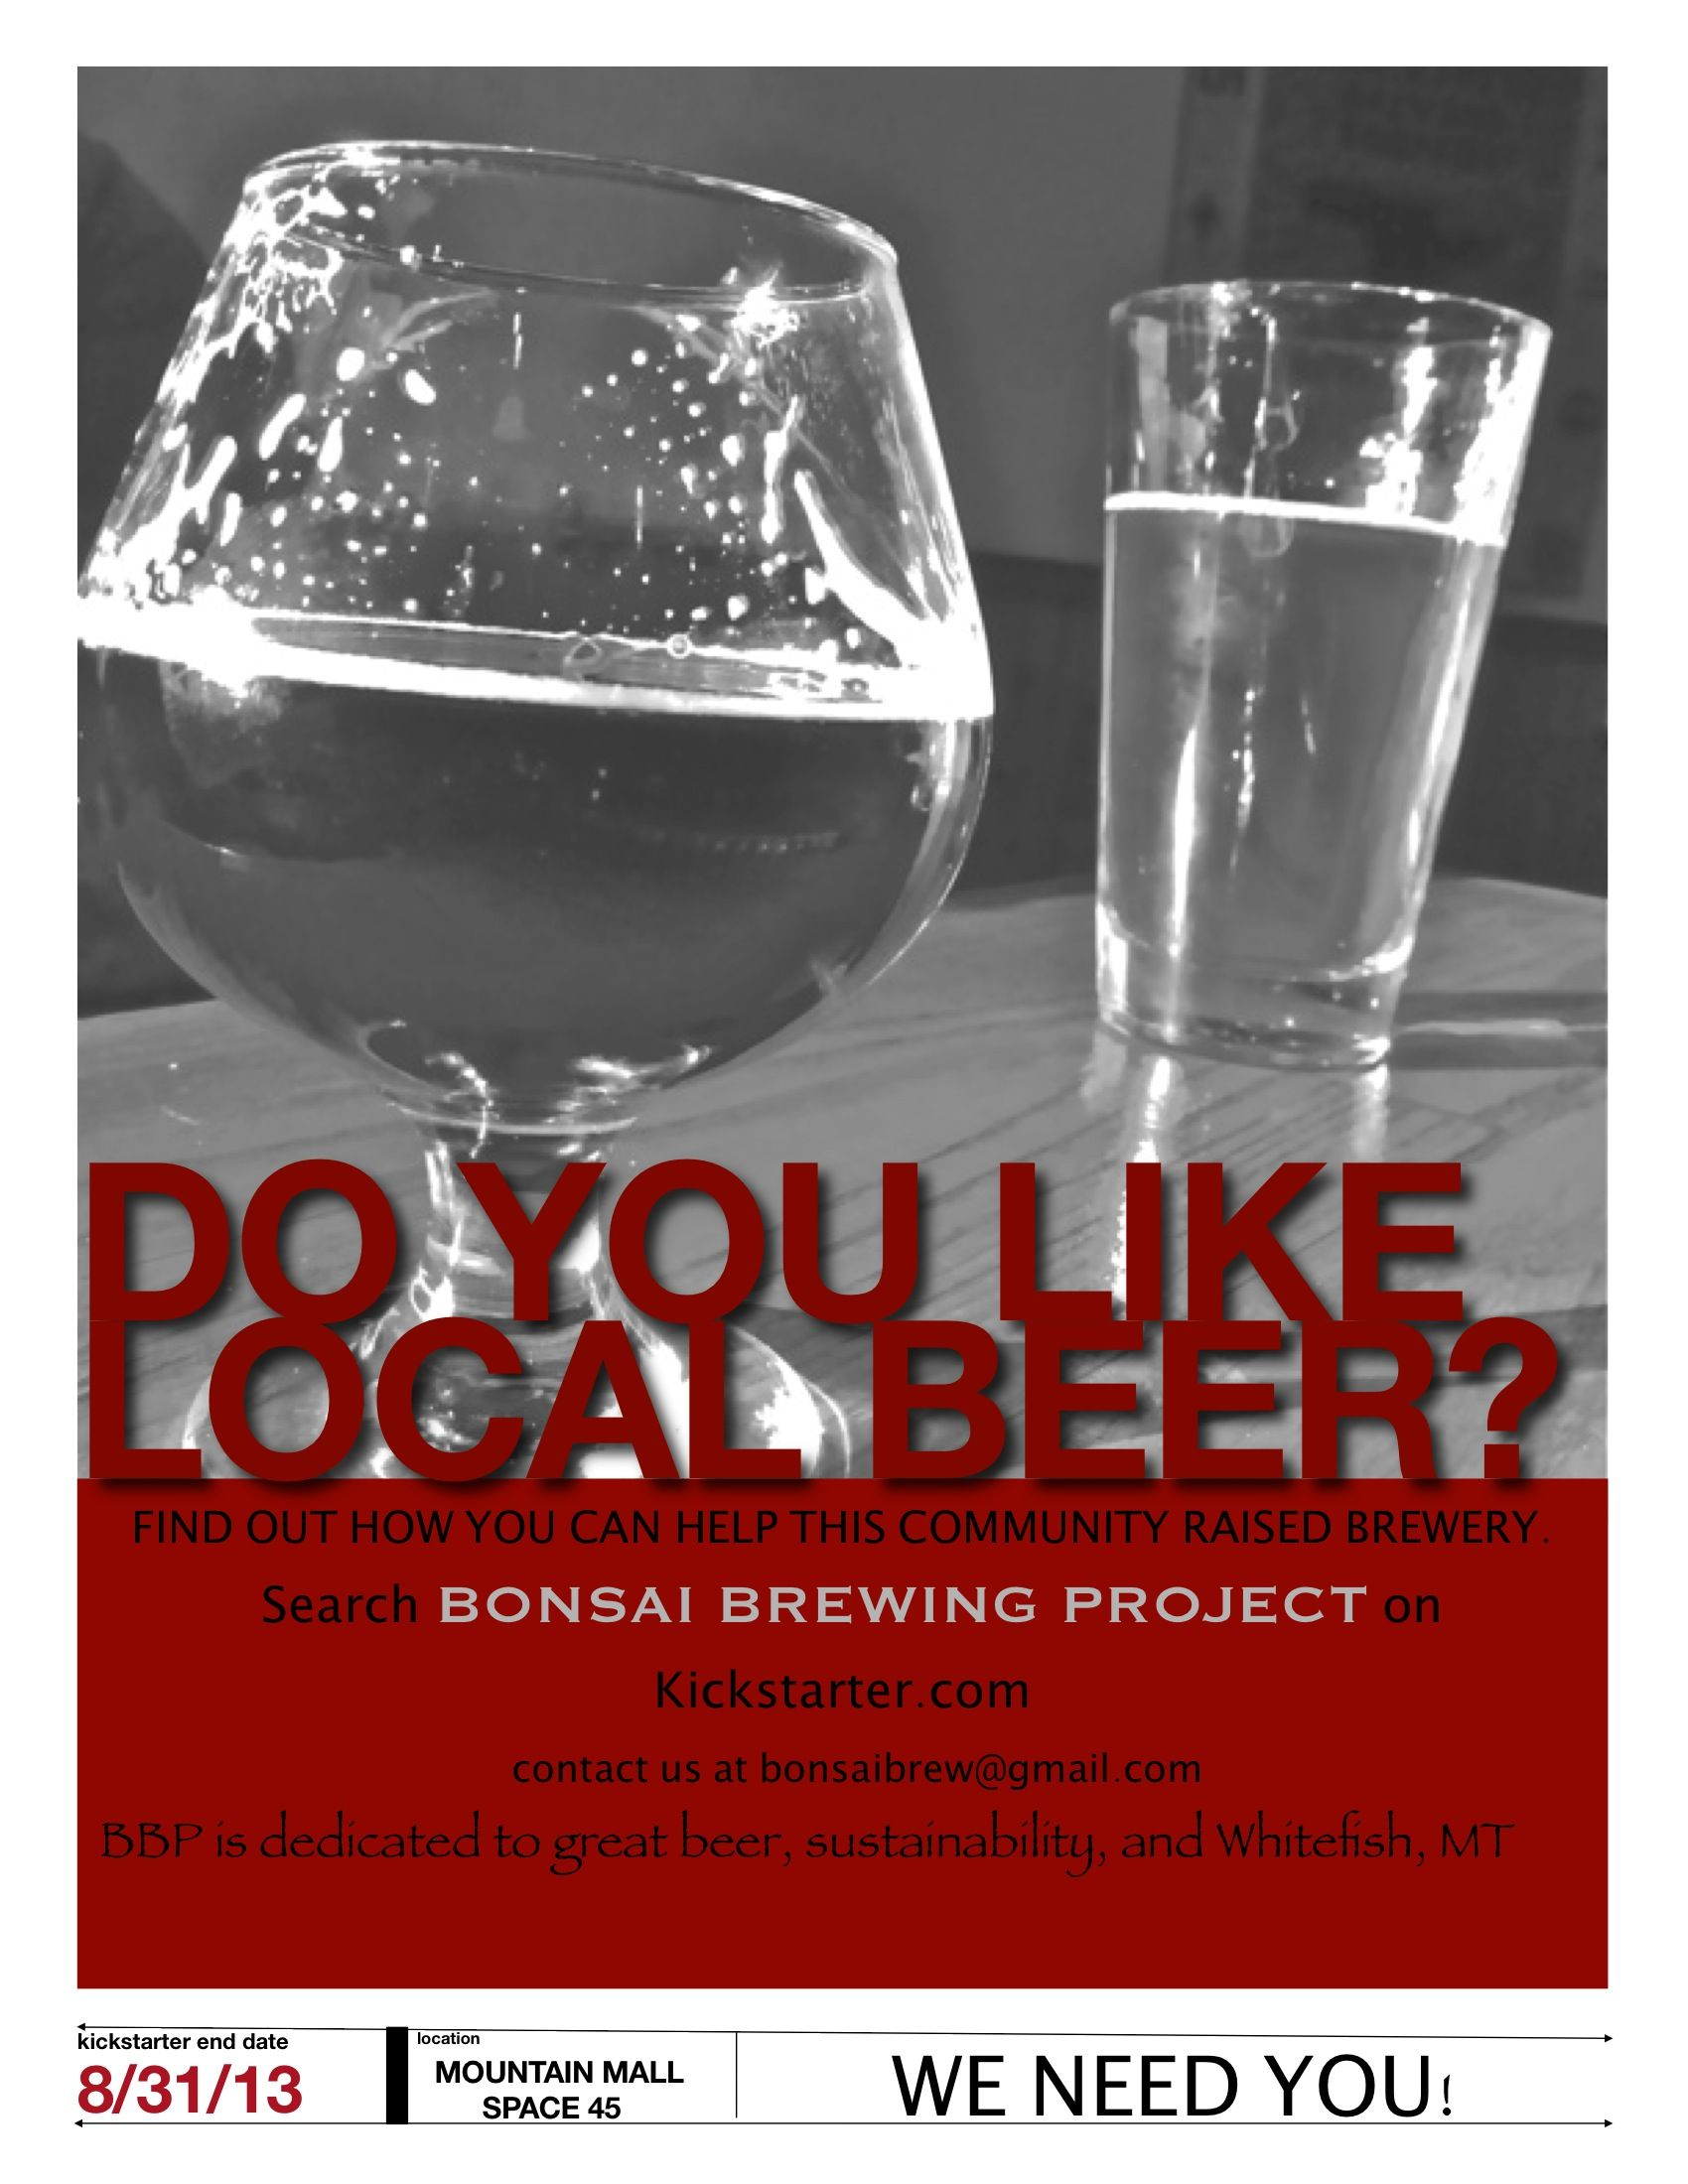 Coming Soon Bonsai Brewing Project In Whitefish Mt See How You Can Help This Community Raised Brewery Bonsai Brewing Proje Brewery Beer Accessories Brewing